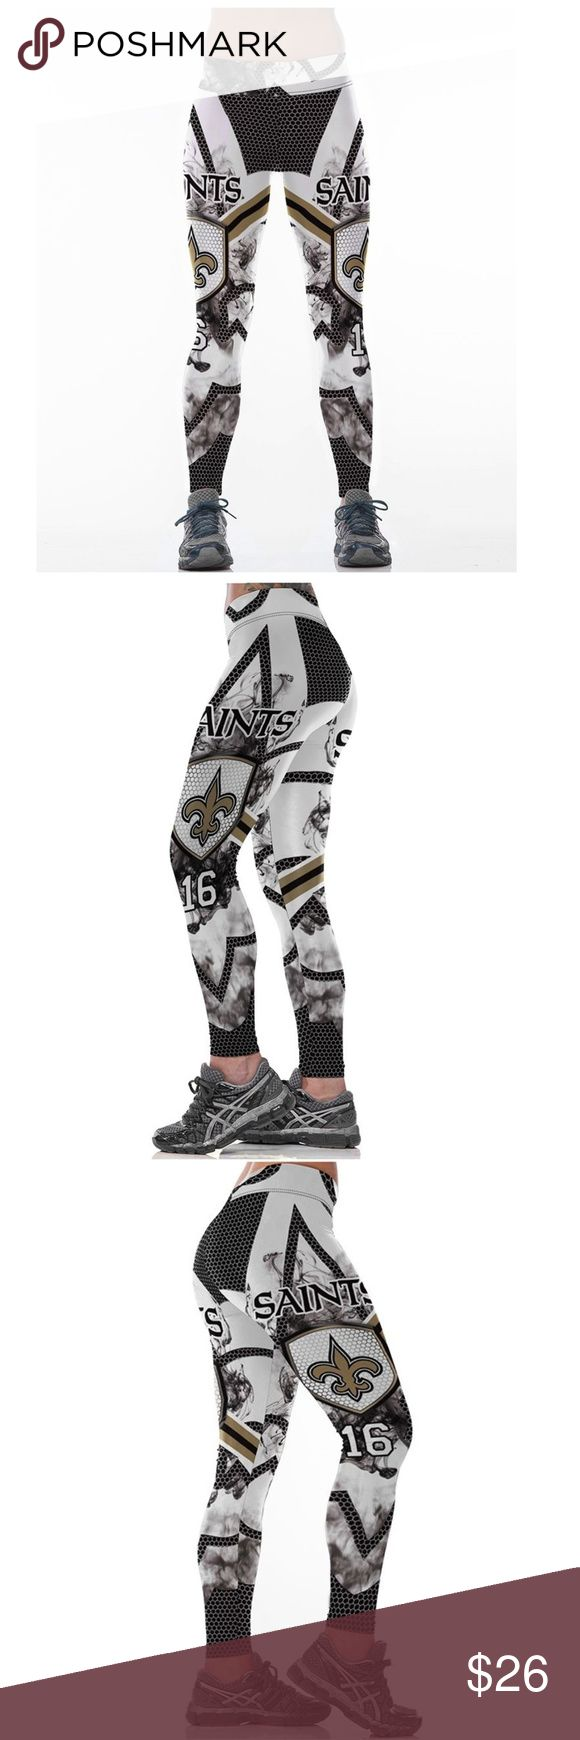 New Orleans Saints NFL Leggings Root for your favorite team in these high quality NFL leggings! Perfect wardrobe addition while watching Sunday football games. The vivid colors and designs are sure to turn heads! Get a pair now while they last to show your team support every week as they inch their way to the glorious Super Bowl Condition: Brand New in Packaging Material: Spandex / Polyester Measurements:  (Length / Waist / Hip) S/M: 36 / 27.5-37 / 33-41.5 L/XL: 36.5 / 30–39.5 / 35.5-44…